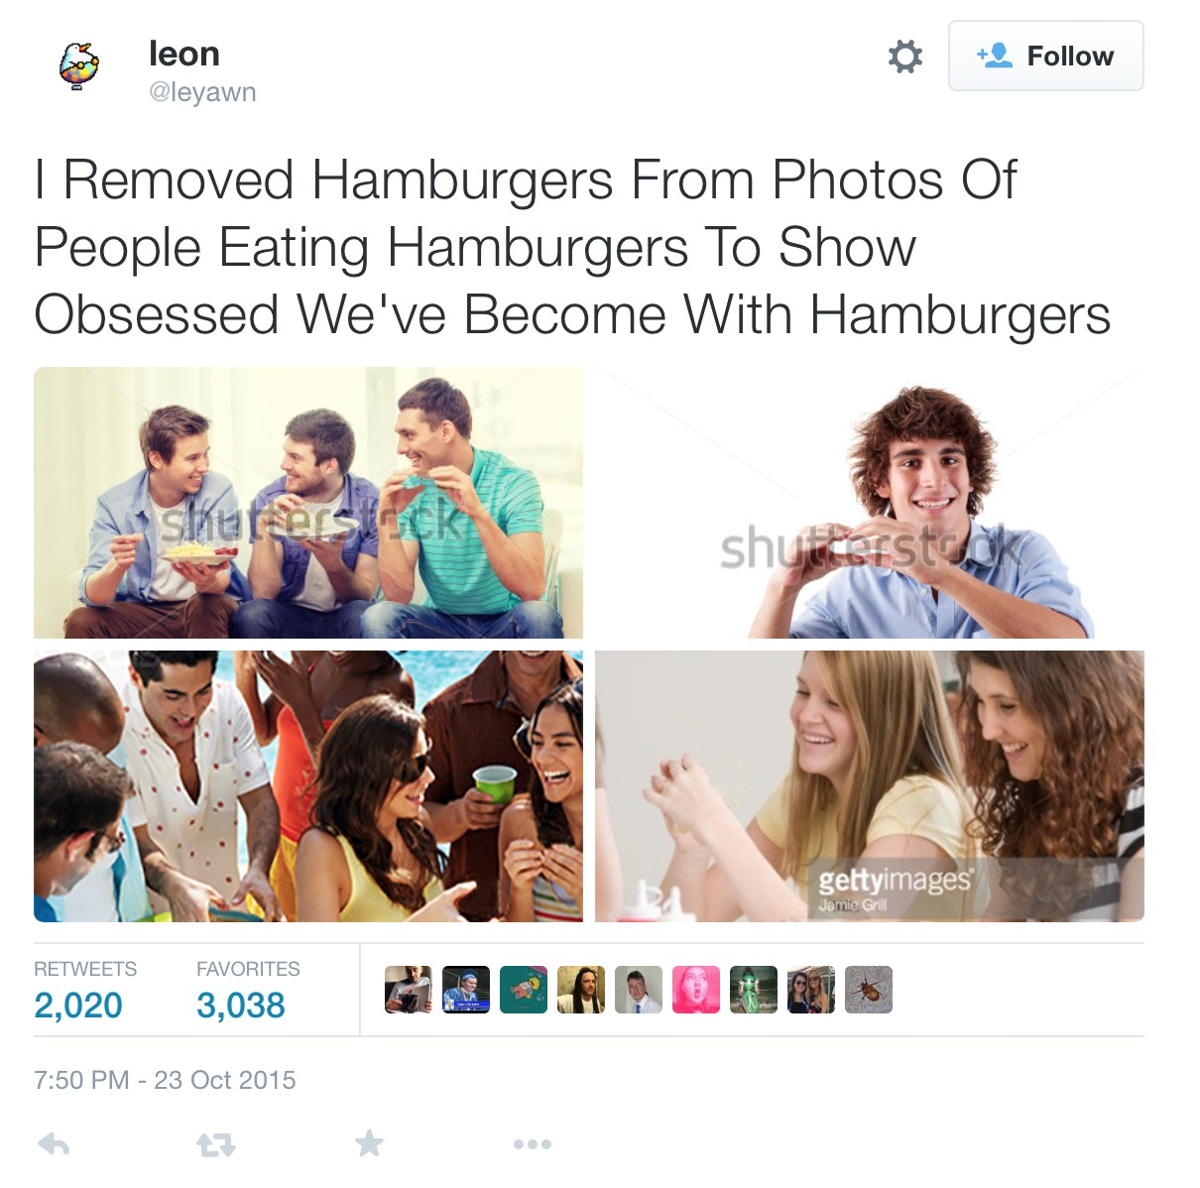 »I Removed Hamburgers From Photos Of People Eating Hamburgers To Show Obsessed We've Become With Ham